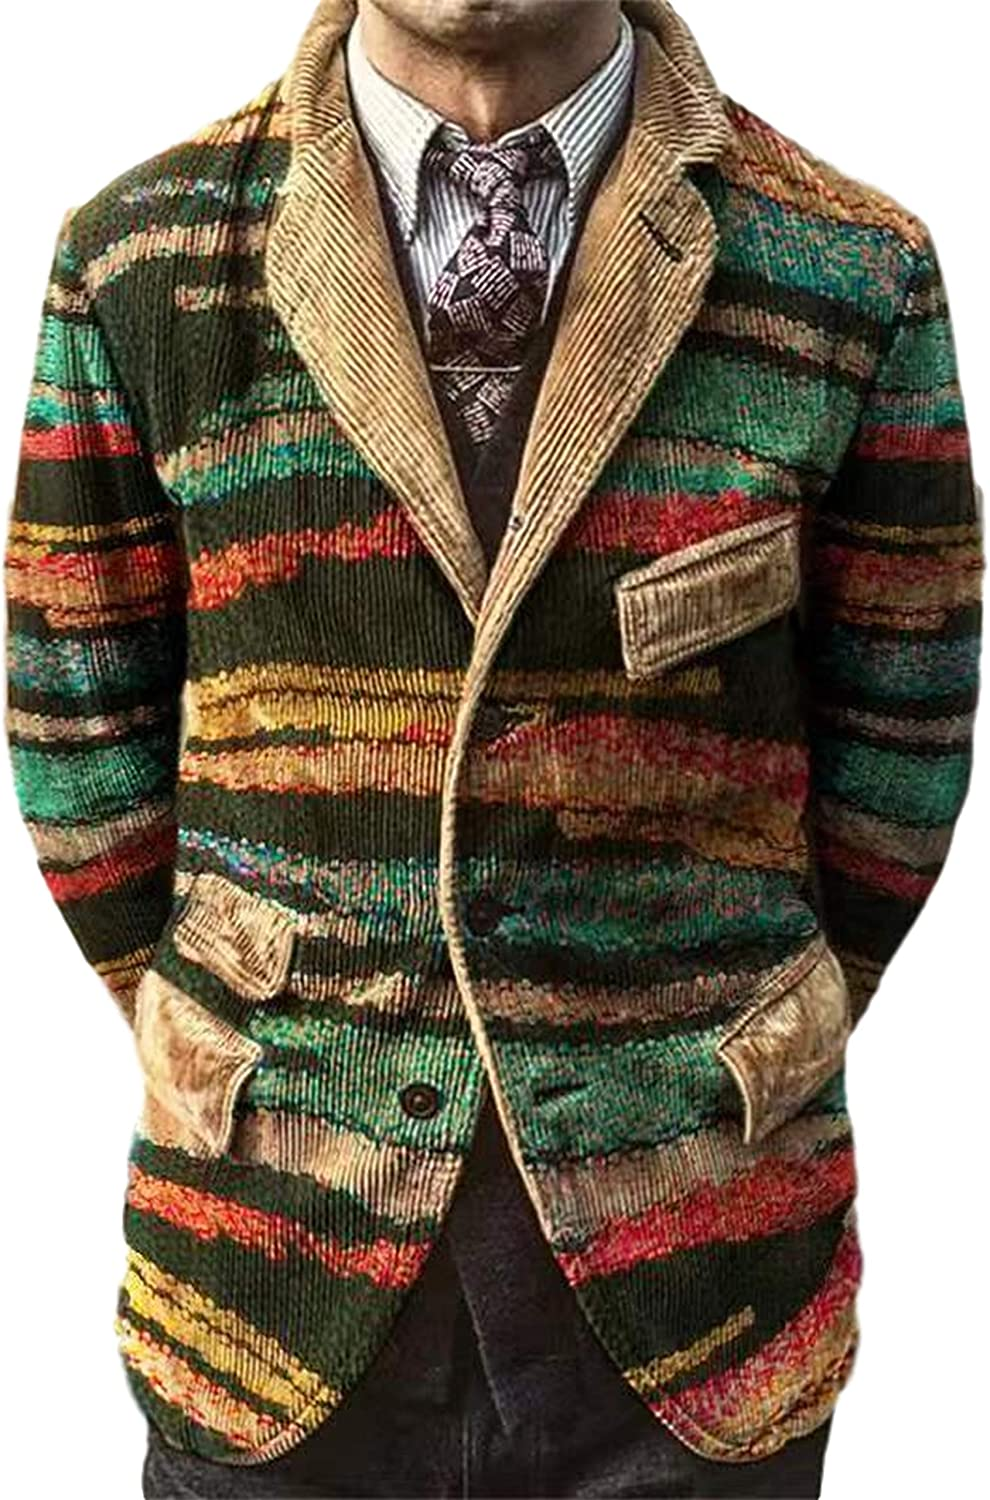 Uaneo Men's Corduroy Printed Casual Notched Lapel Long Sleeve Blazer Suit Jacket(Green-XS)